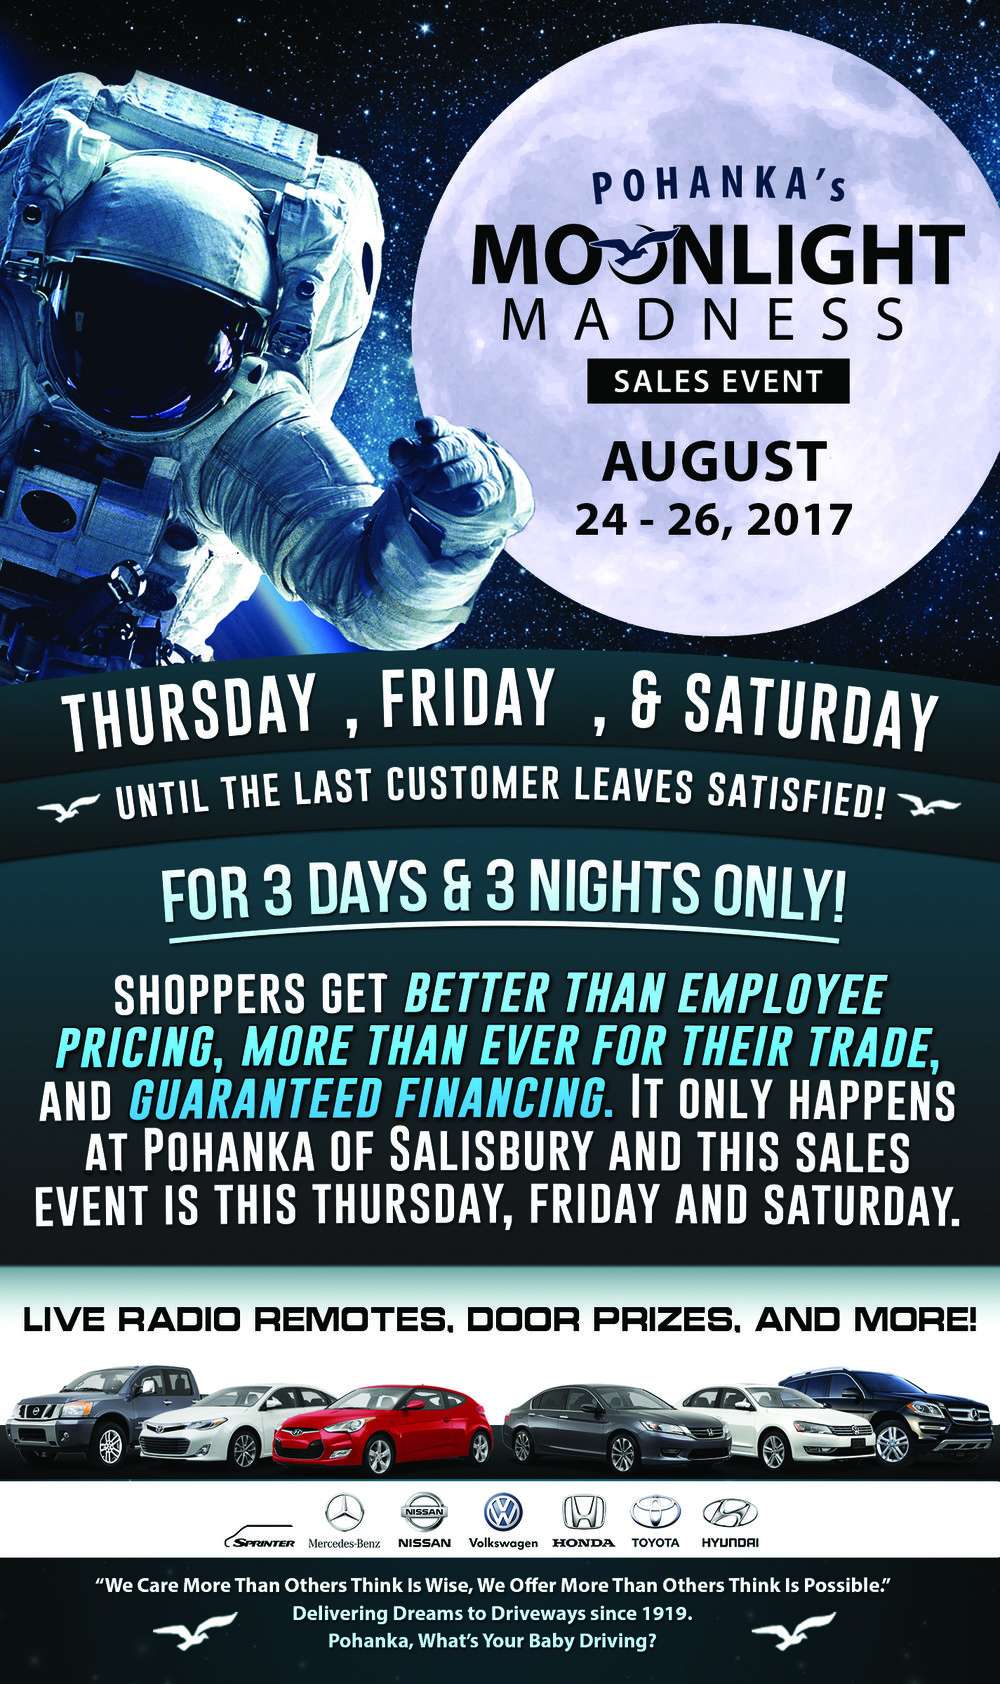 Moonlight Madness Ad AUG '17.jpg